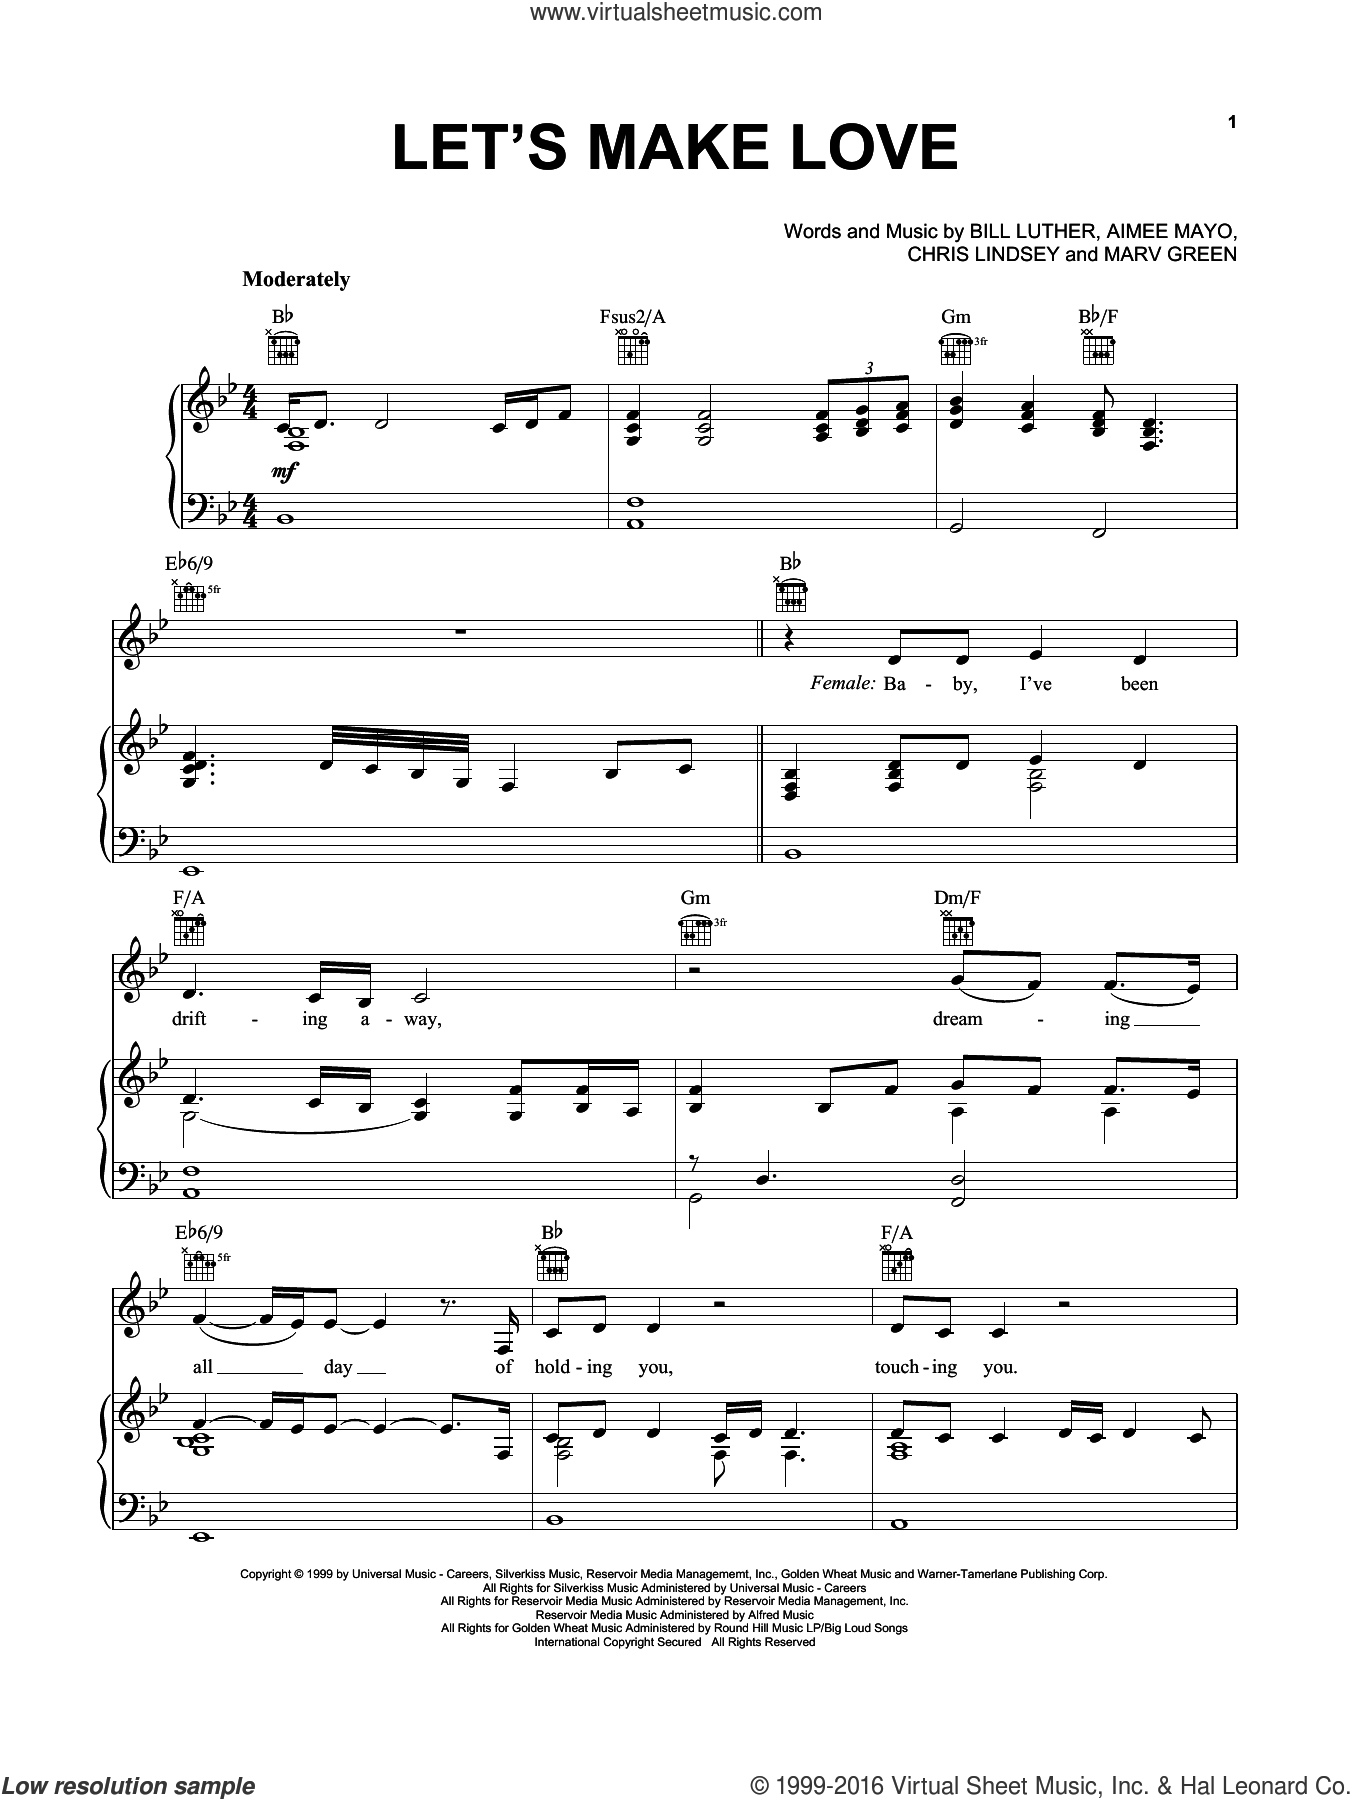 Let's Make Love sheet music for voice, piano or guitar by Chris Lindsey